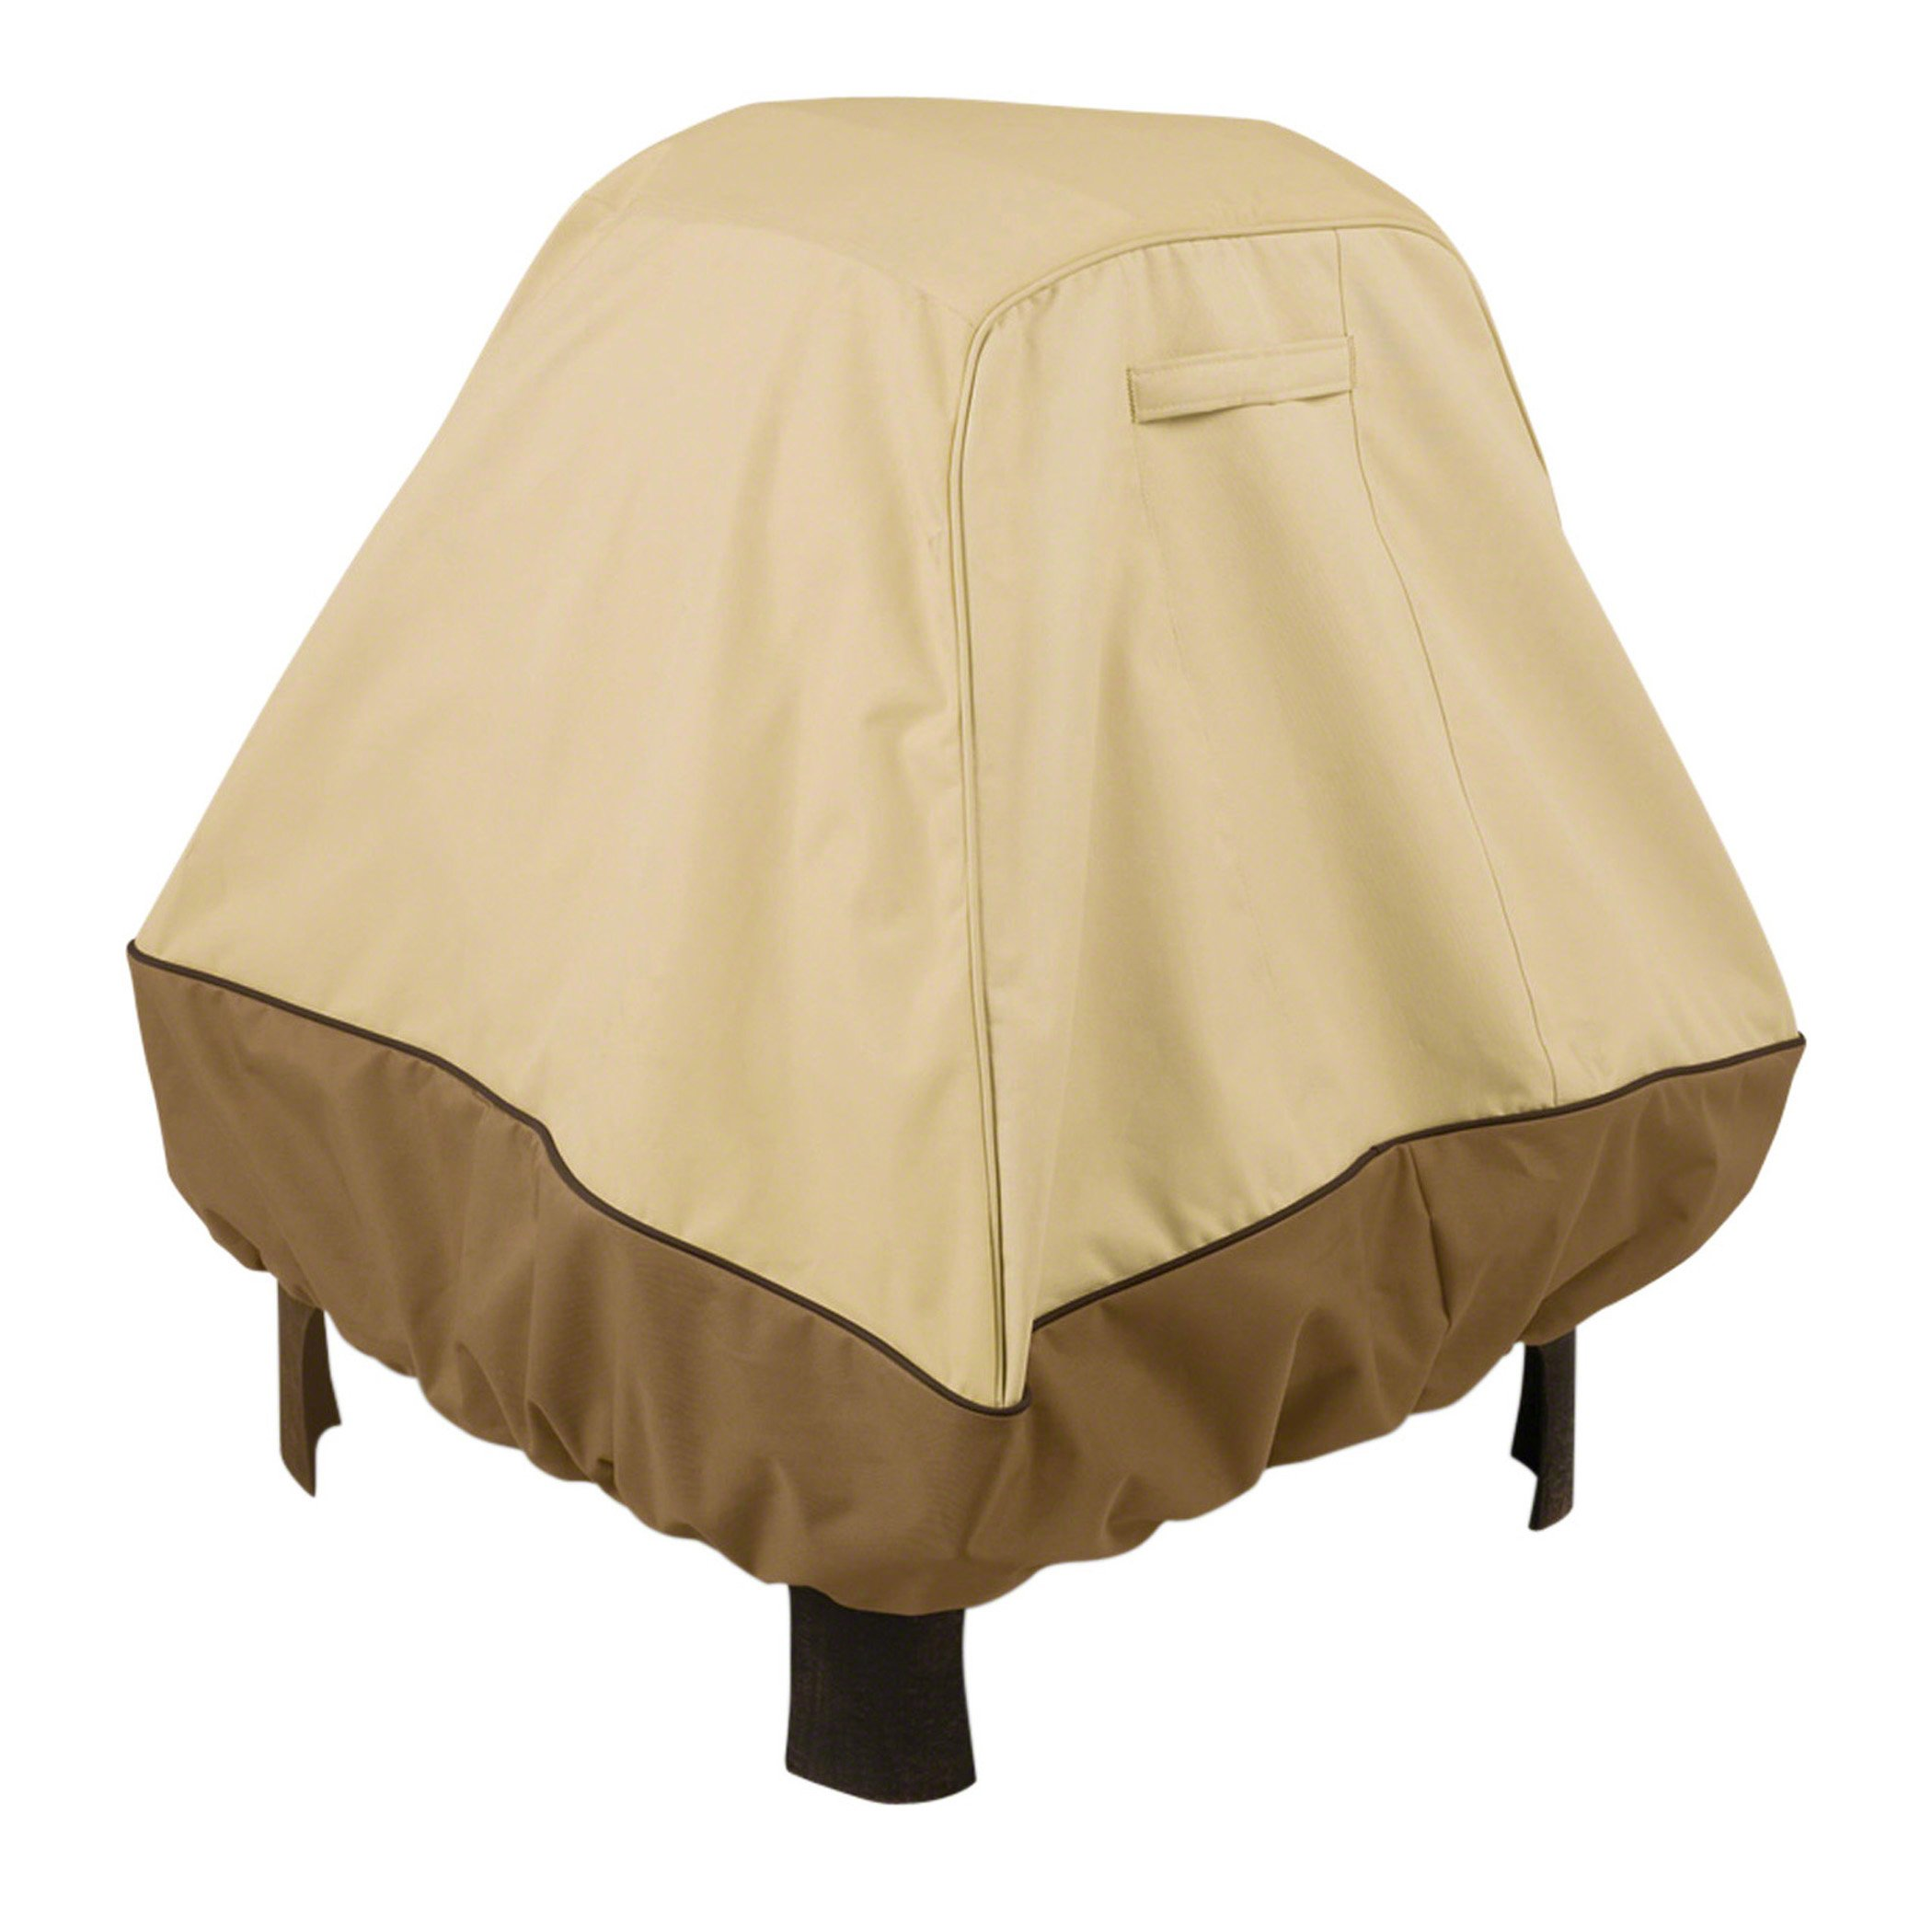 Classic Accessories Veranda Fire Pit Cover, X-Large, Standing